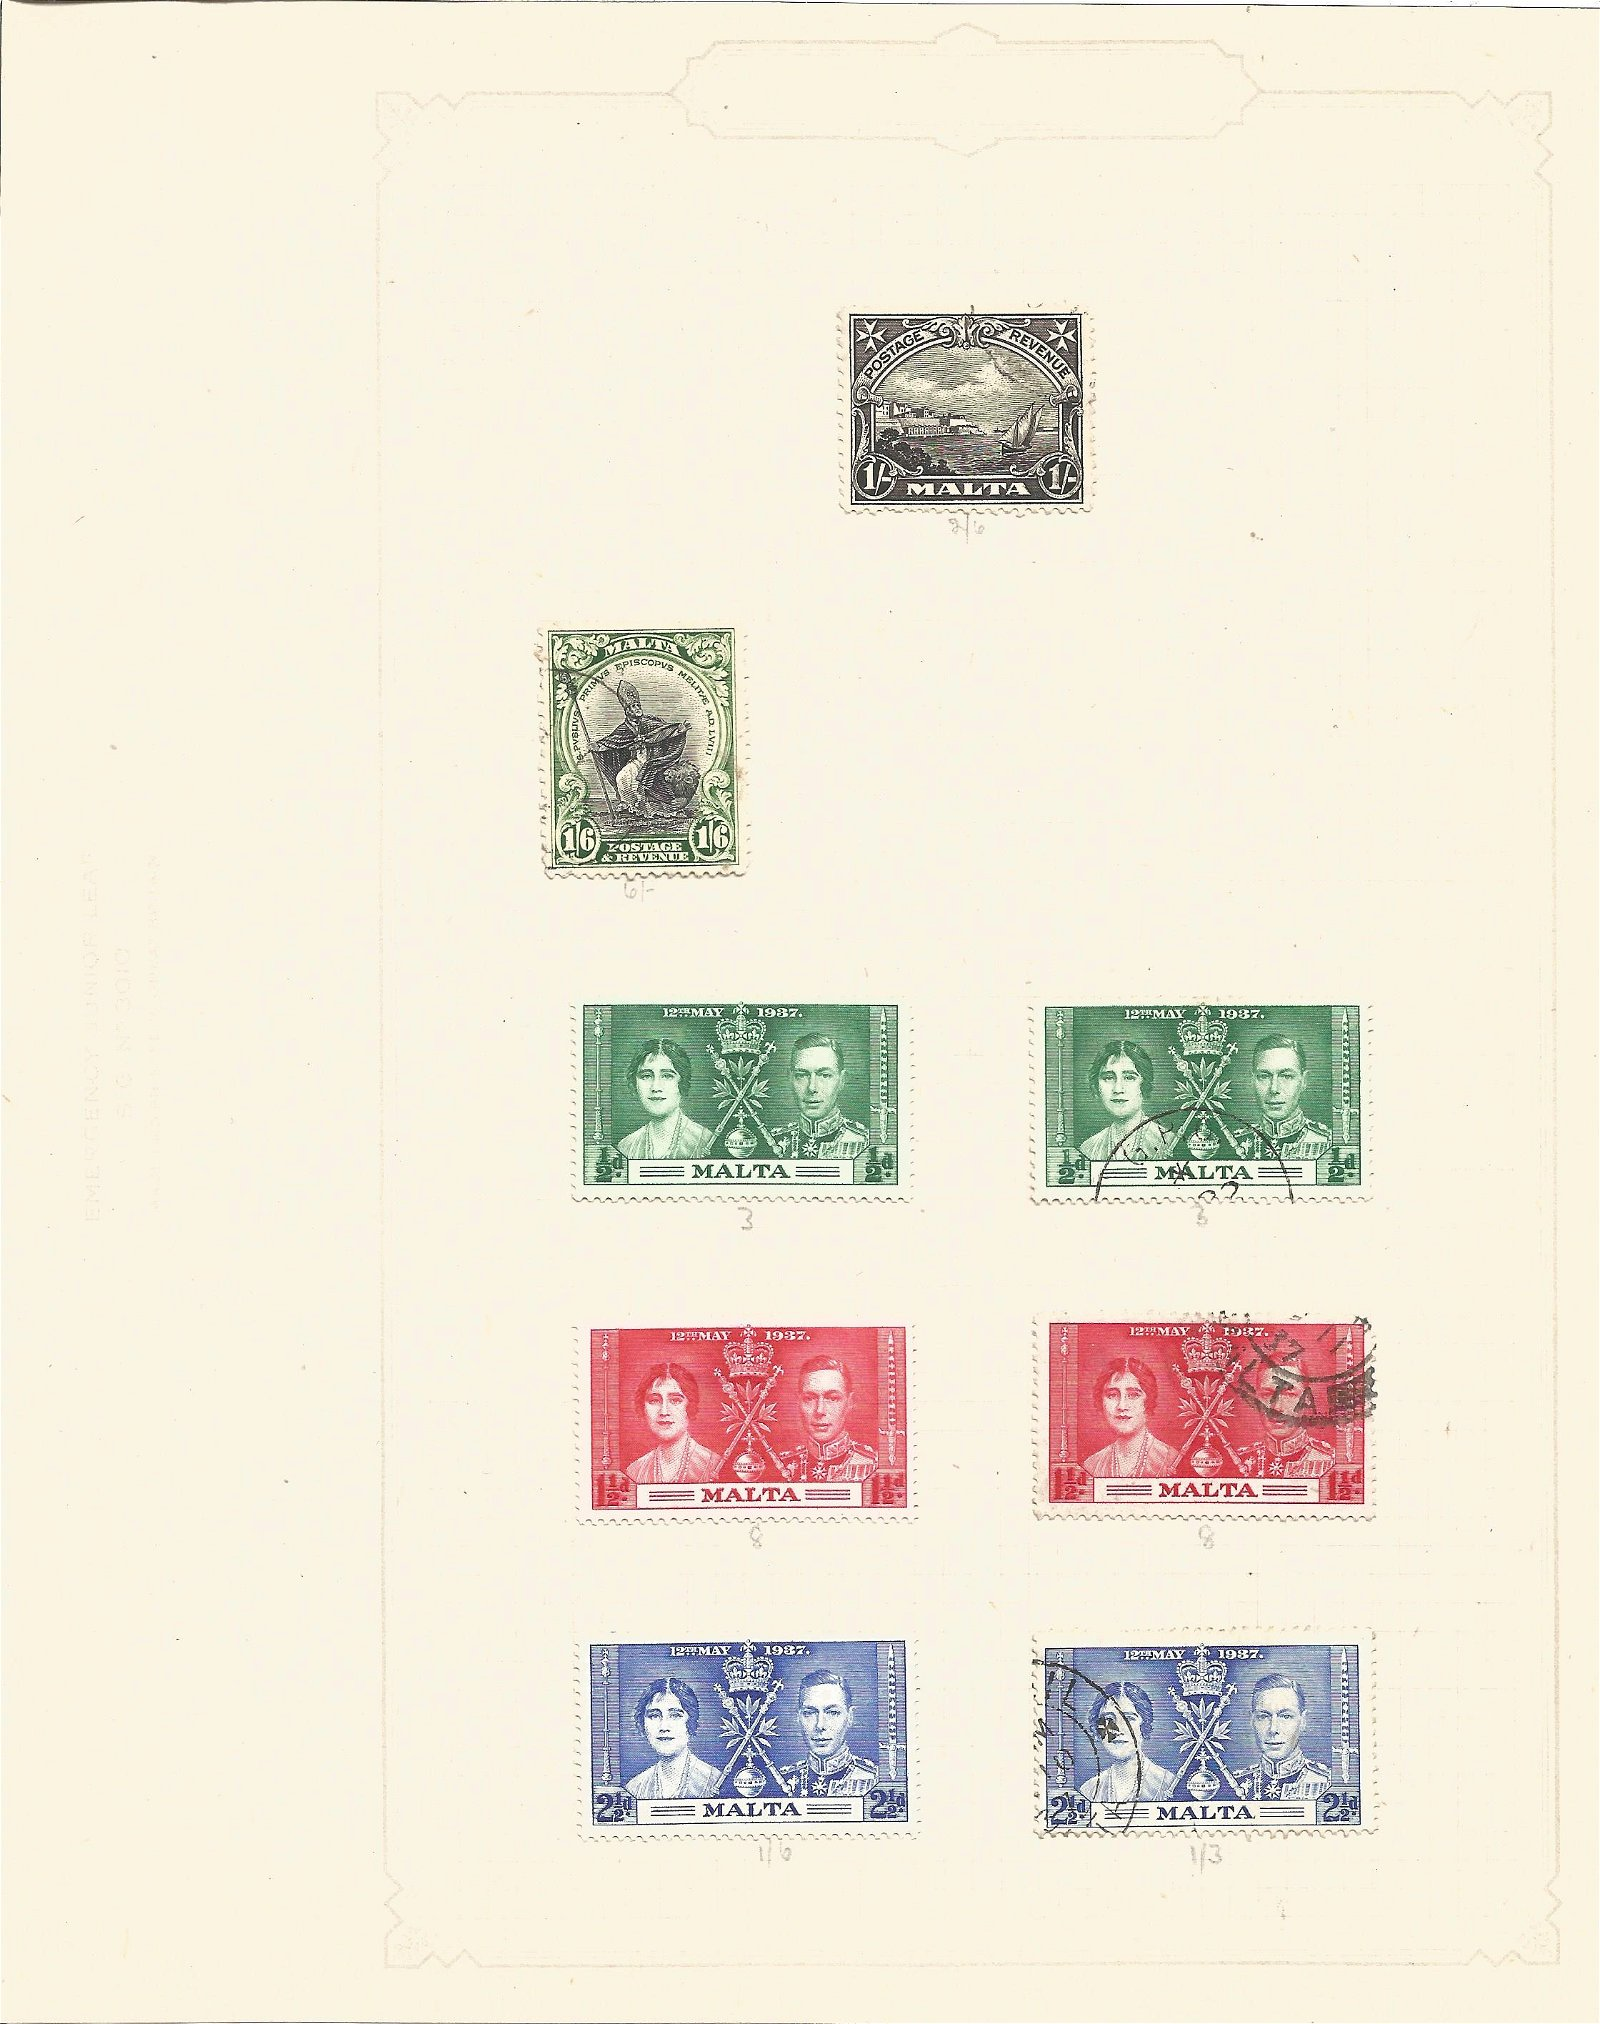 Malta stamp collection, Mint and used, 1937 coronation